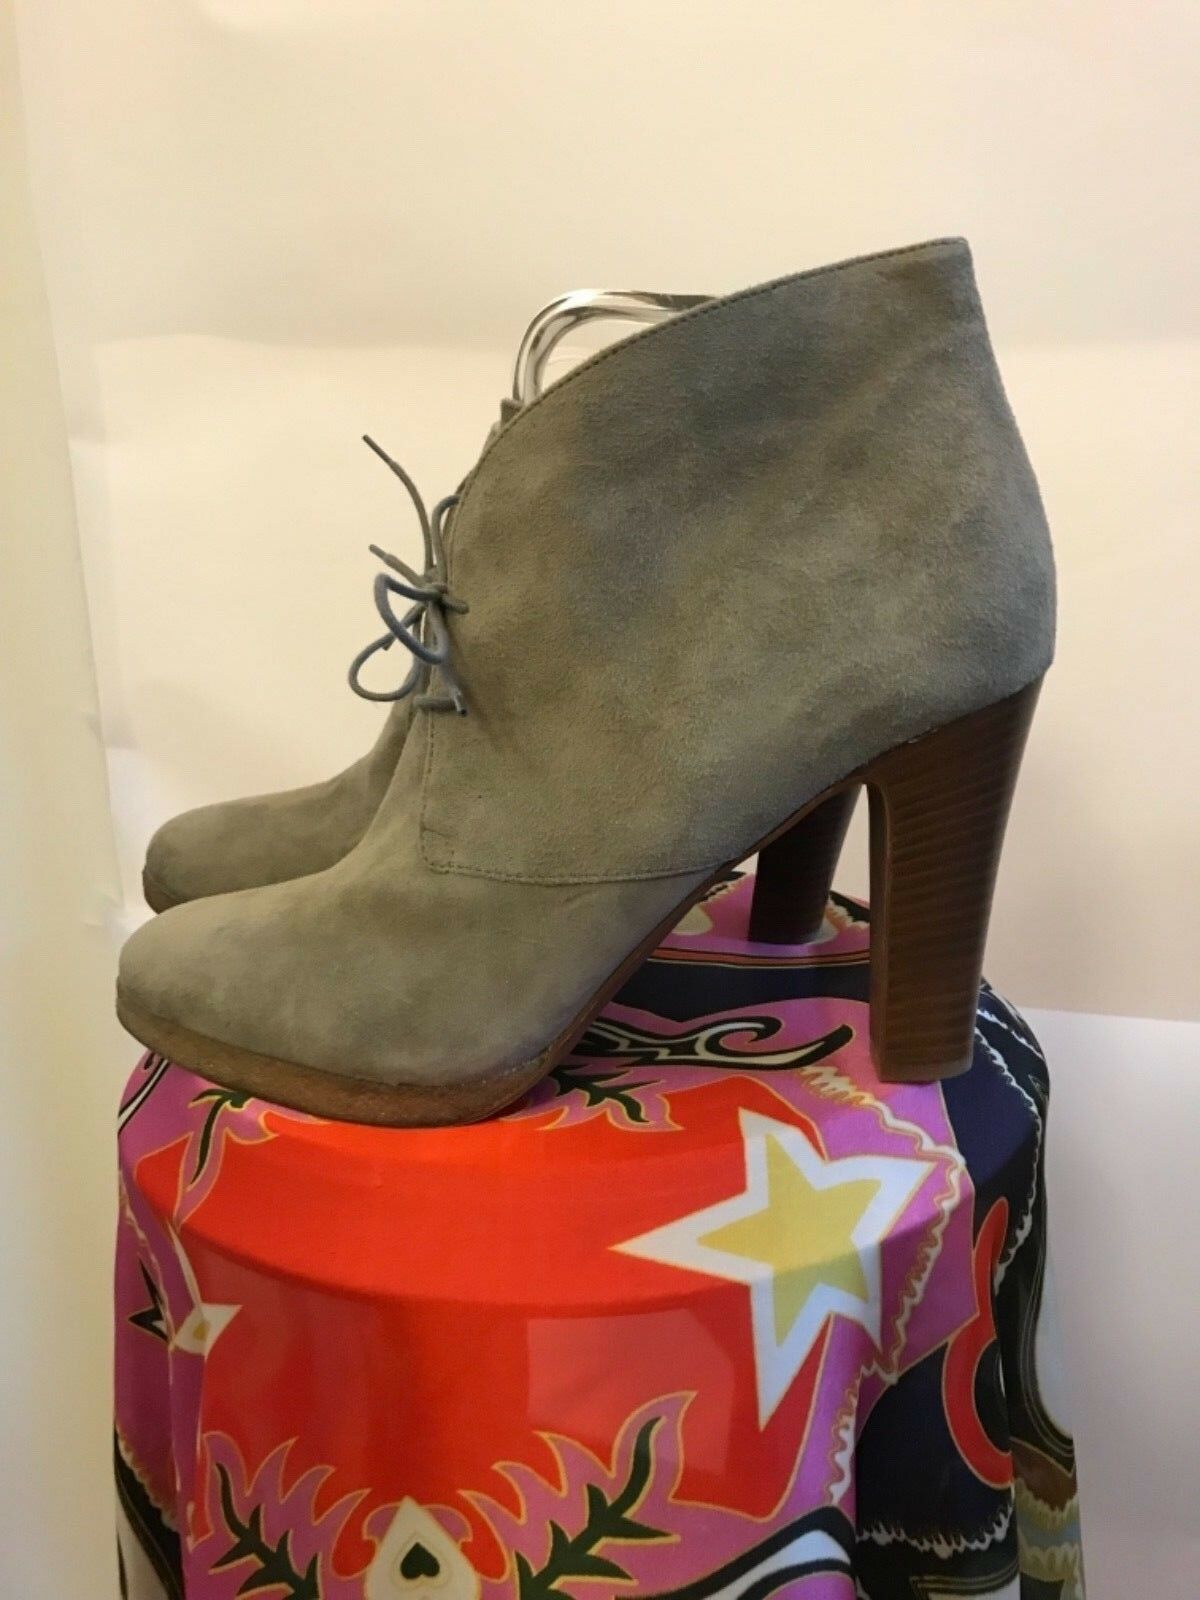 J.CREW SUEDE ANKLE BOOTS 11US/8UK/41EU   new